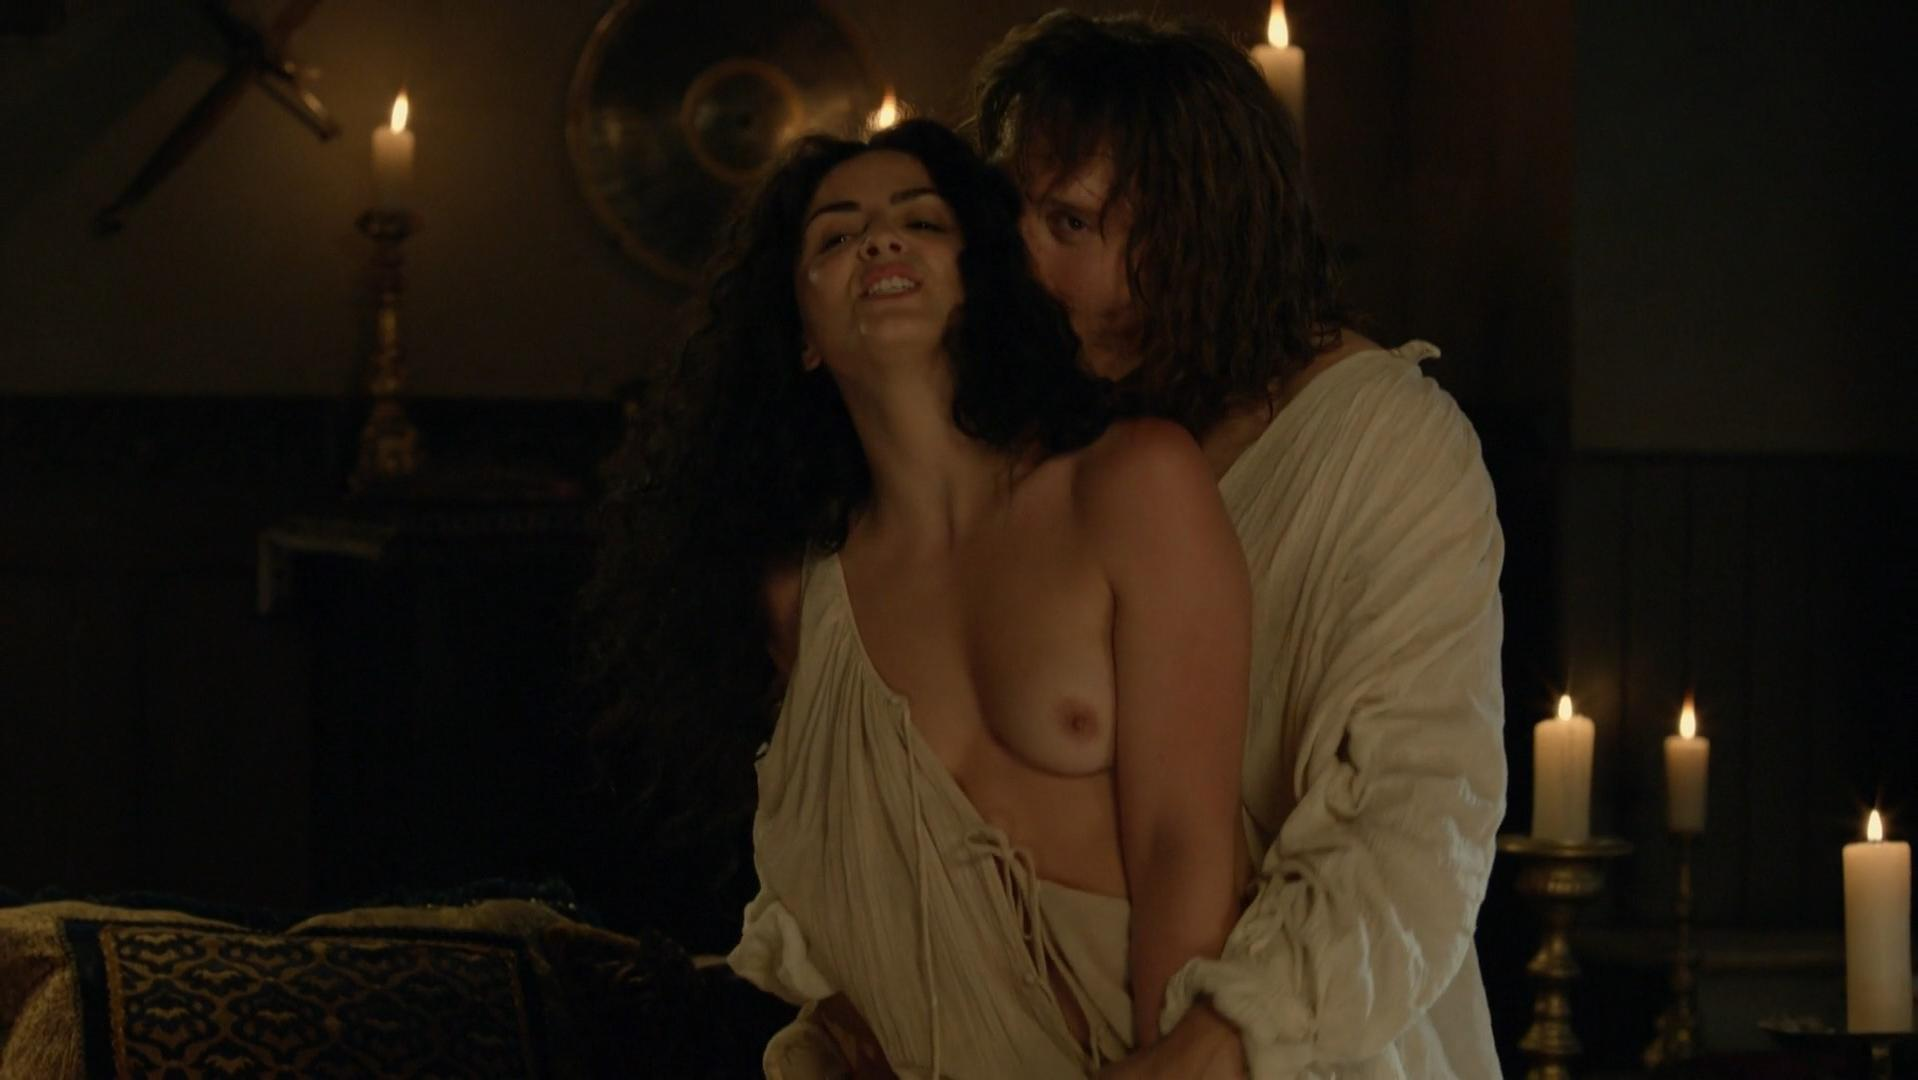 Kellie Blaise nude - The Borgias s02e03 (2012)